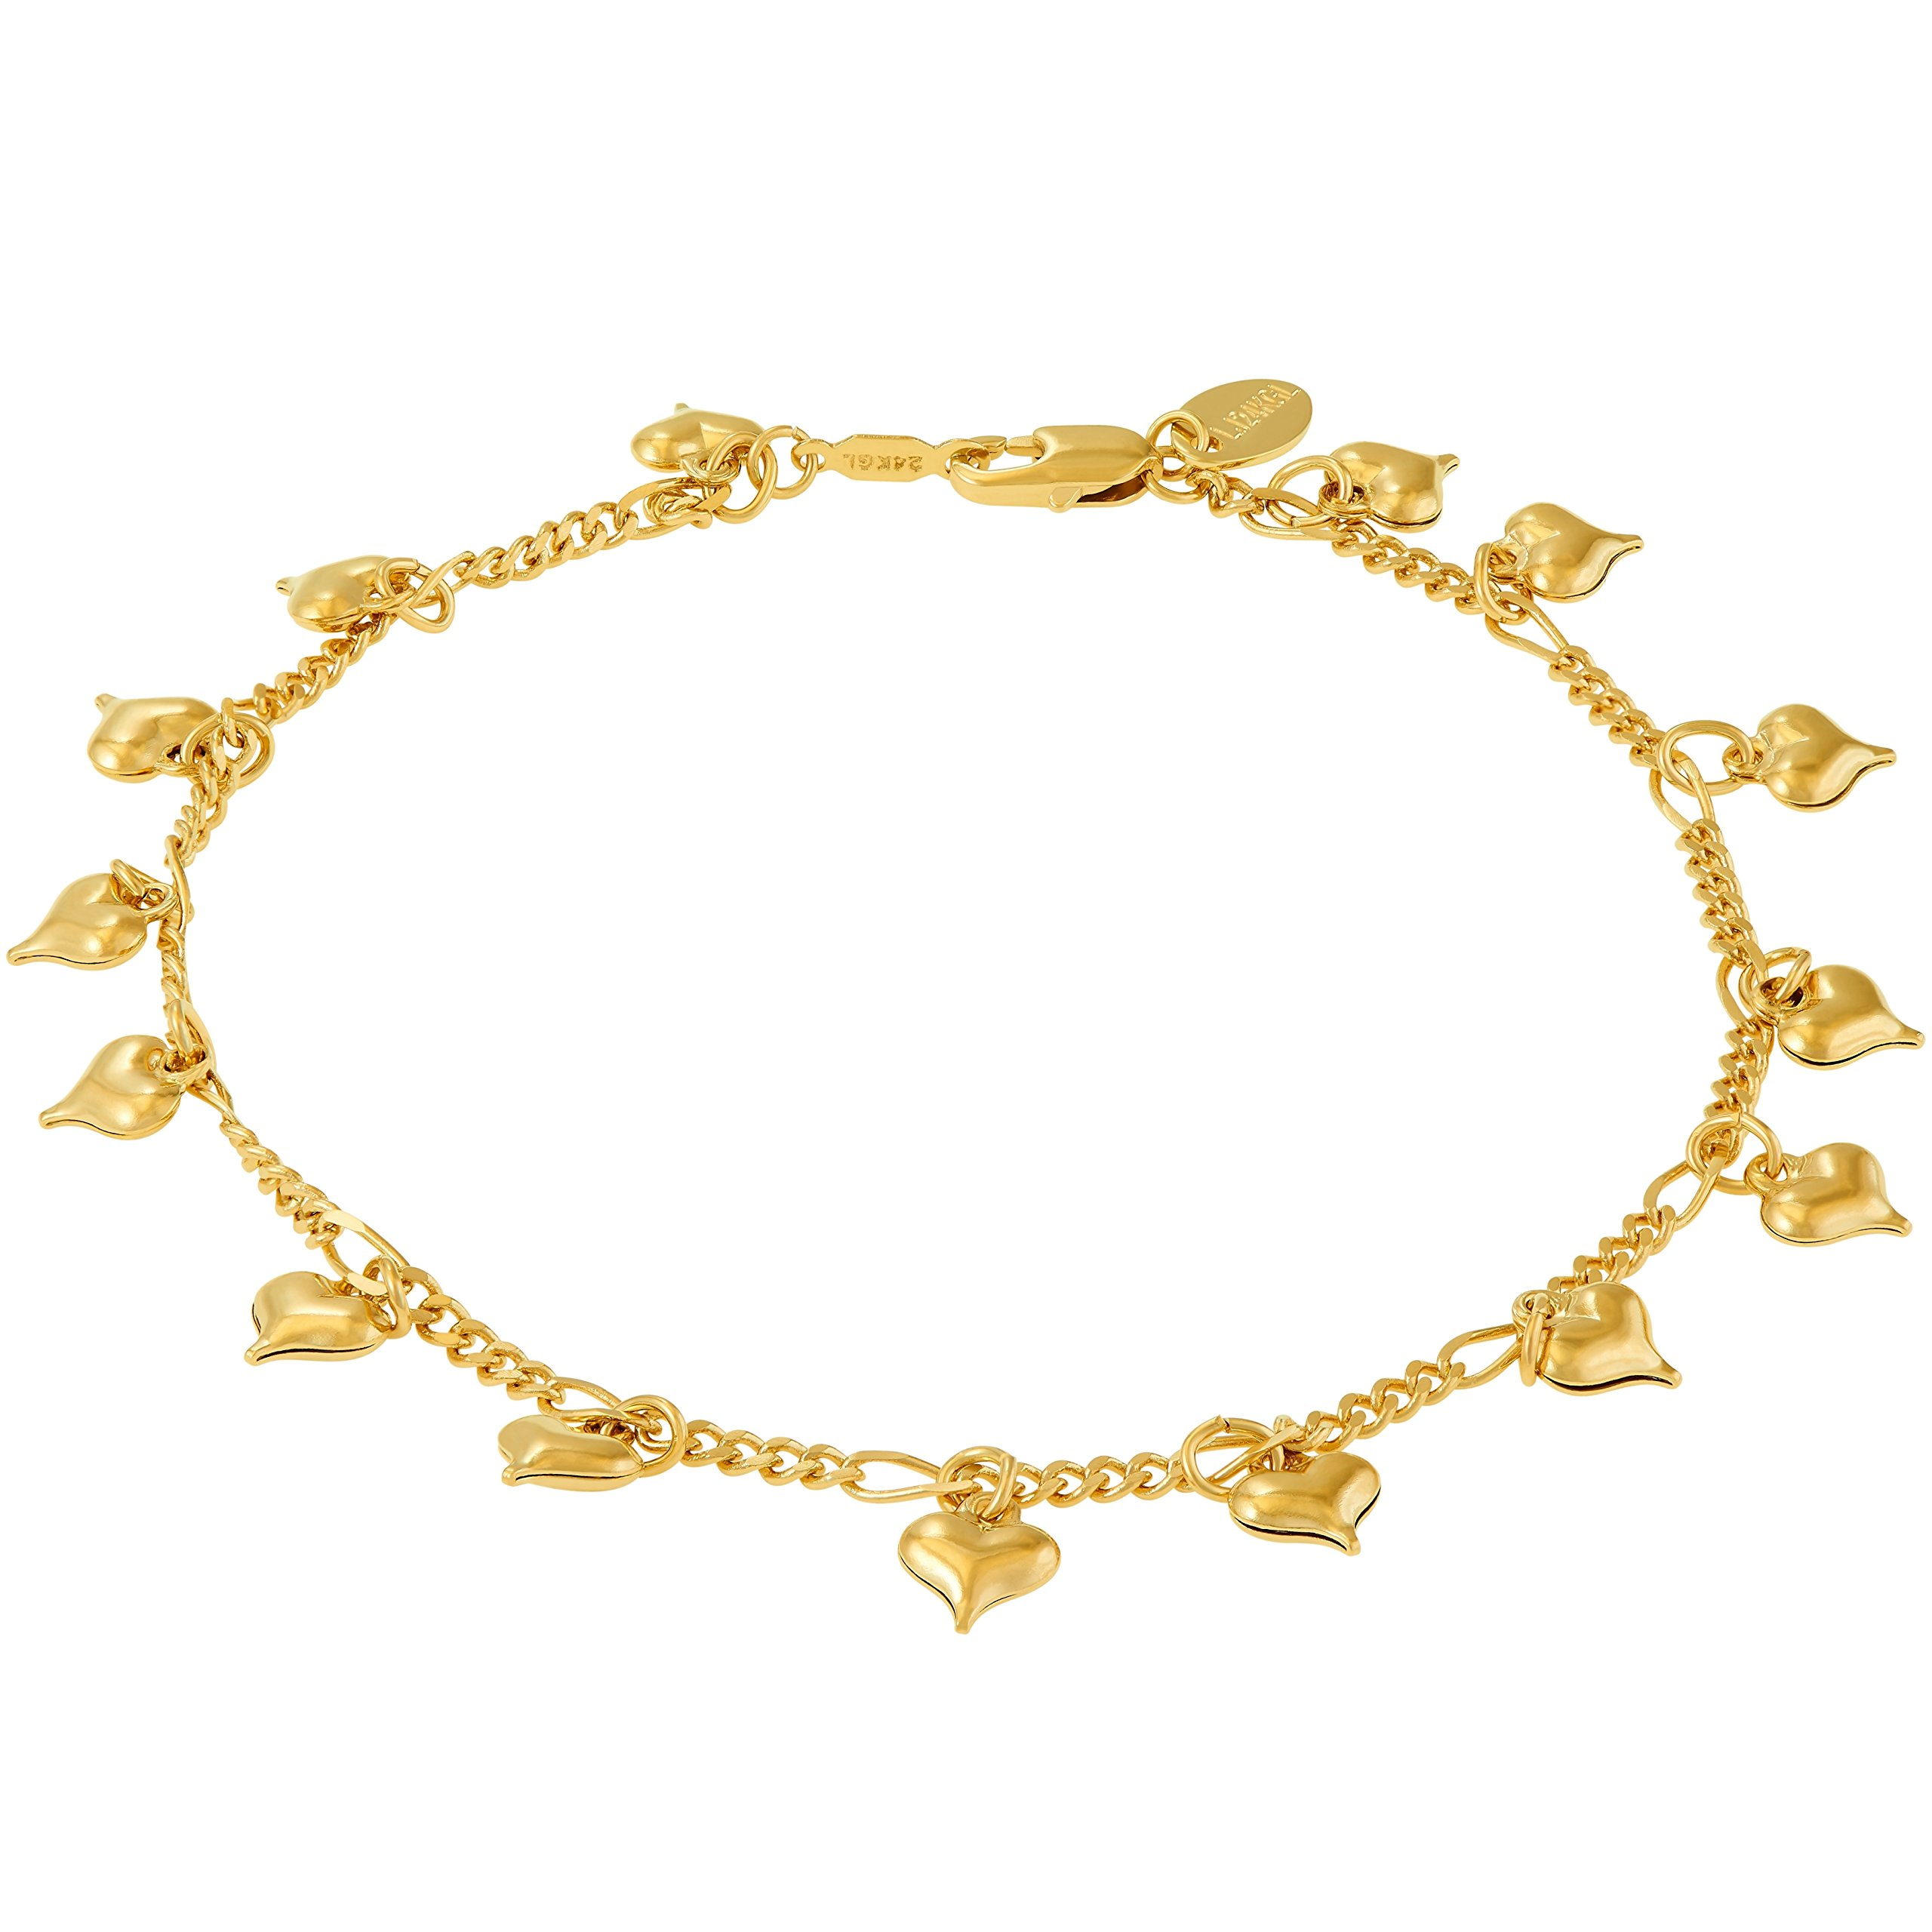 Lifetime Jewelry Anklets for Women and Teen Girls - 24K Gold Plated Chain with Dangling Hearts - Ankle Bracelet to Wear at Beach or Party - Cute Surfer Anklet - 9 10 and 11 inches (9)